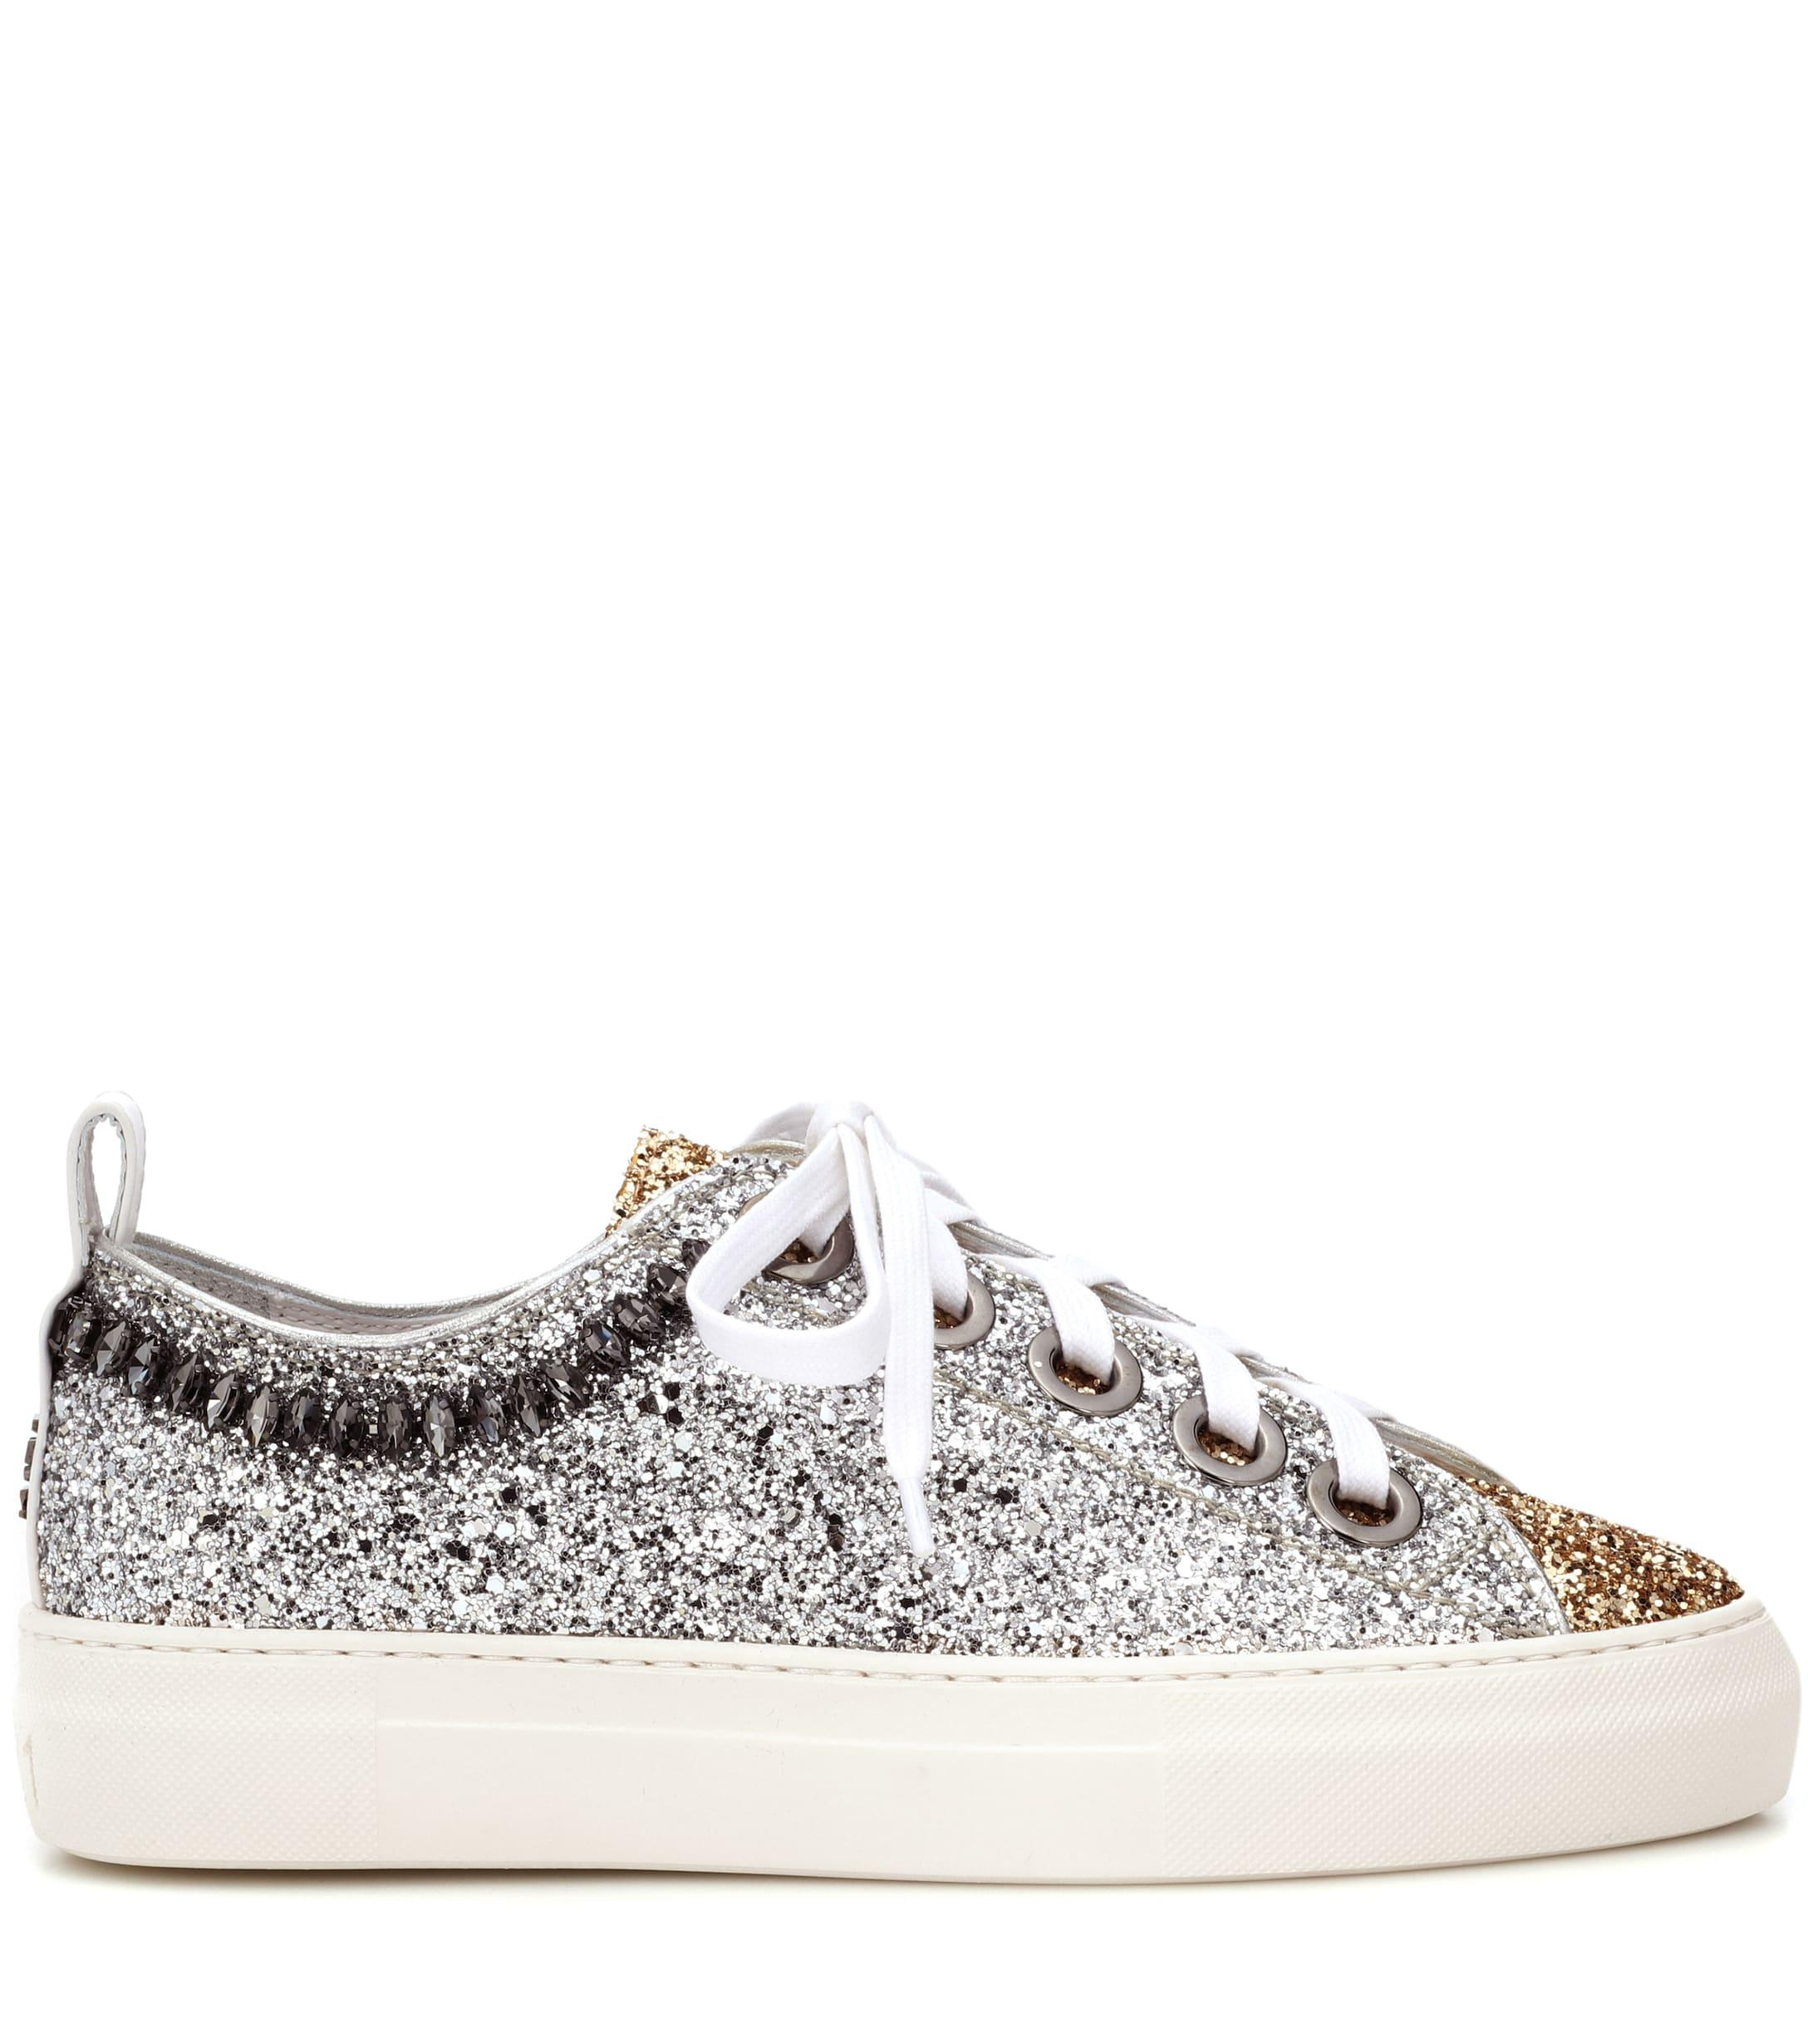 N°21 Glitter And Leather Sneakers in Silver (Metallic)